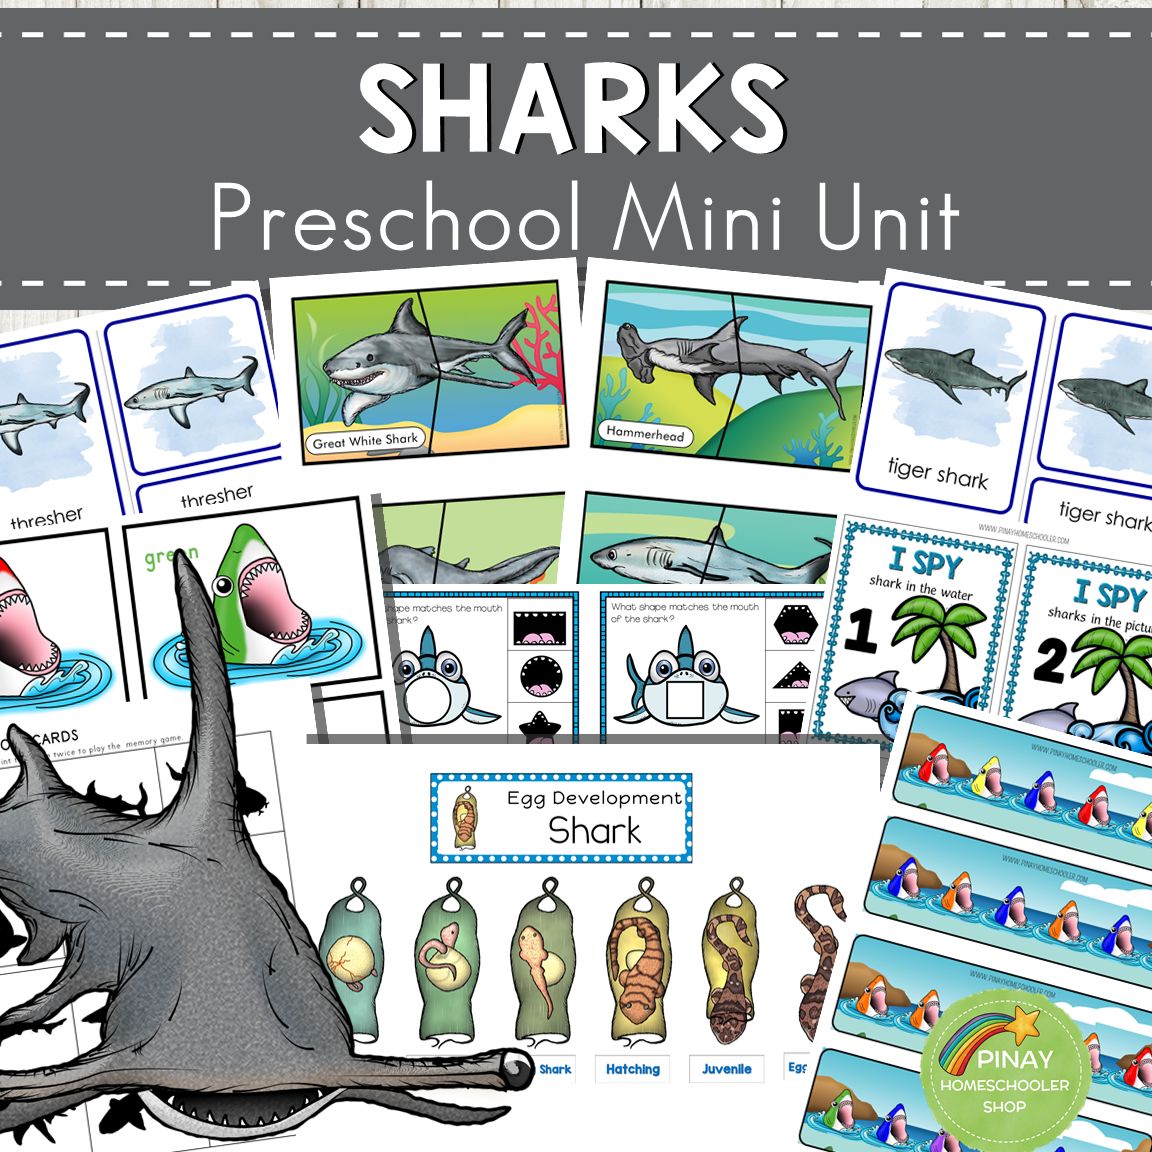 Sharks Preschool Mini Unit Activities